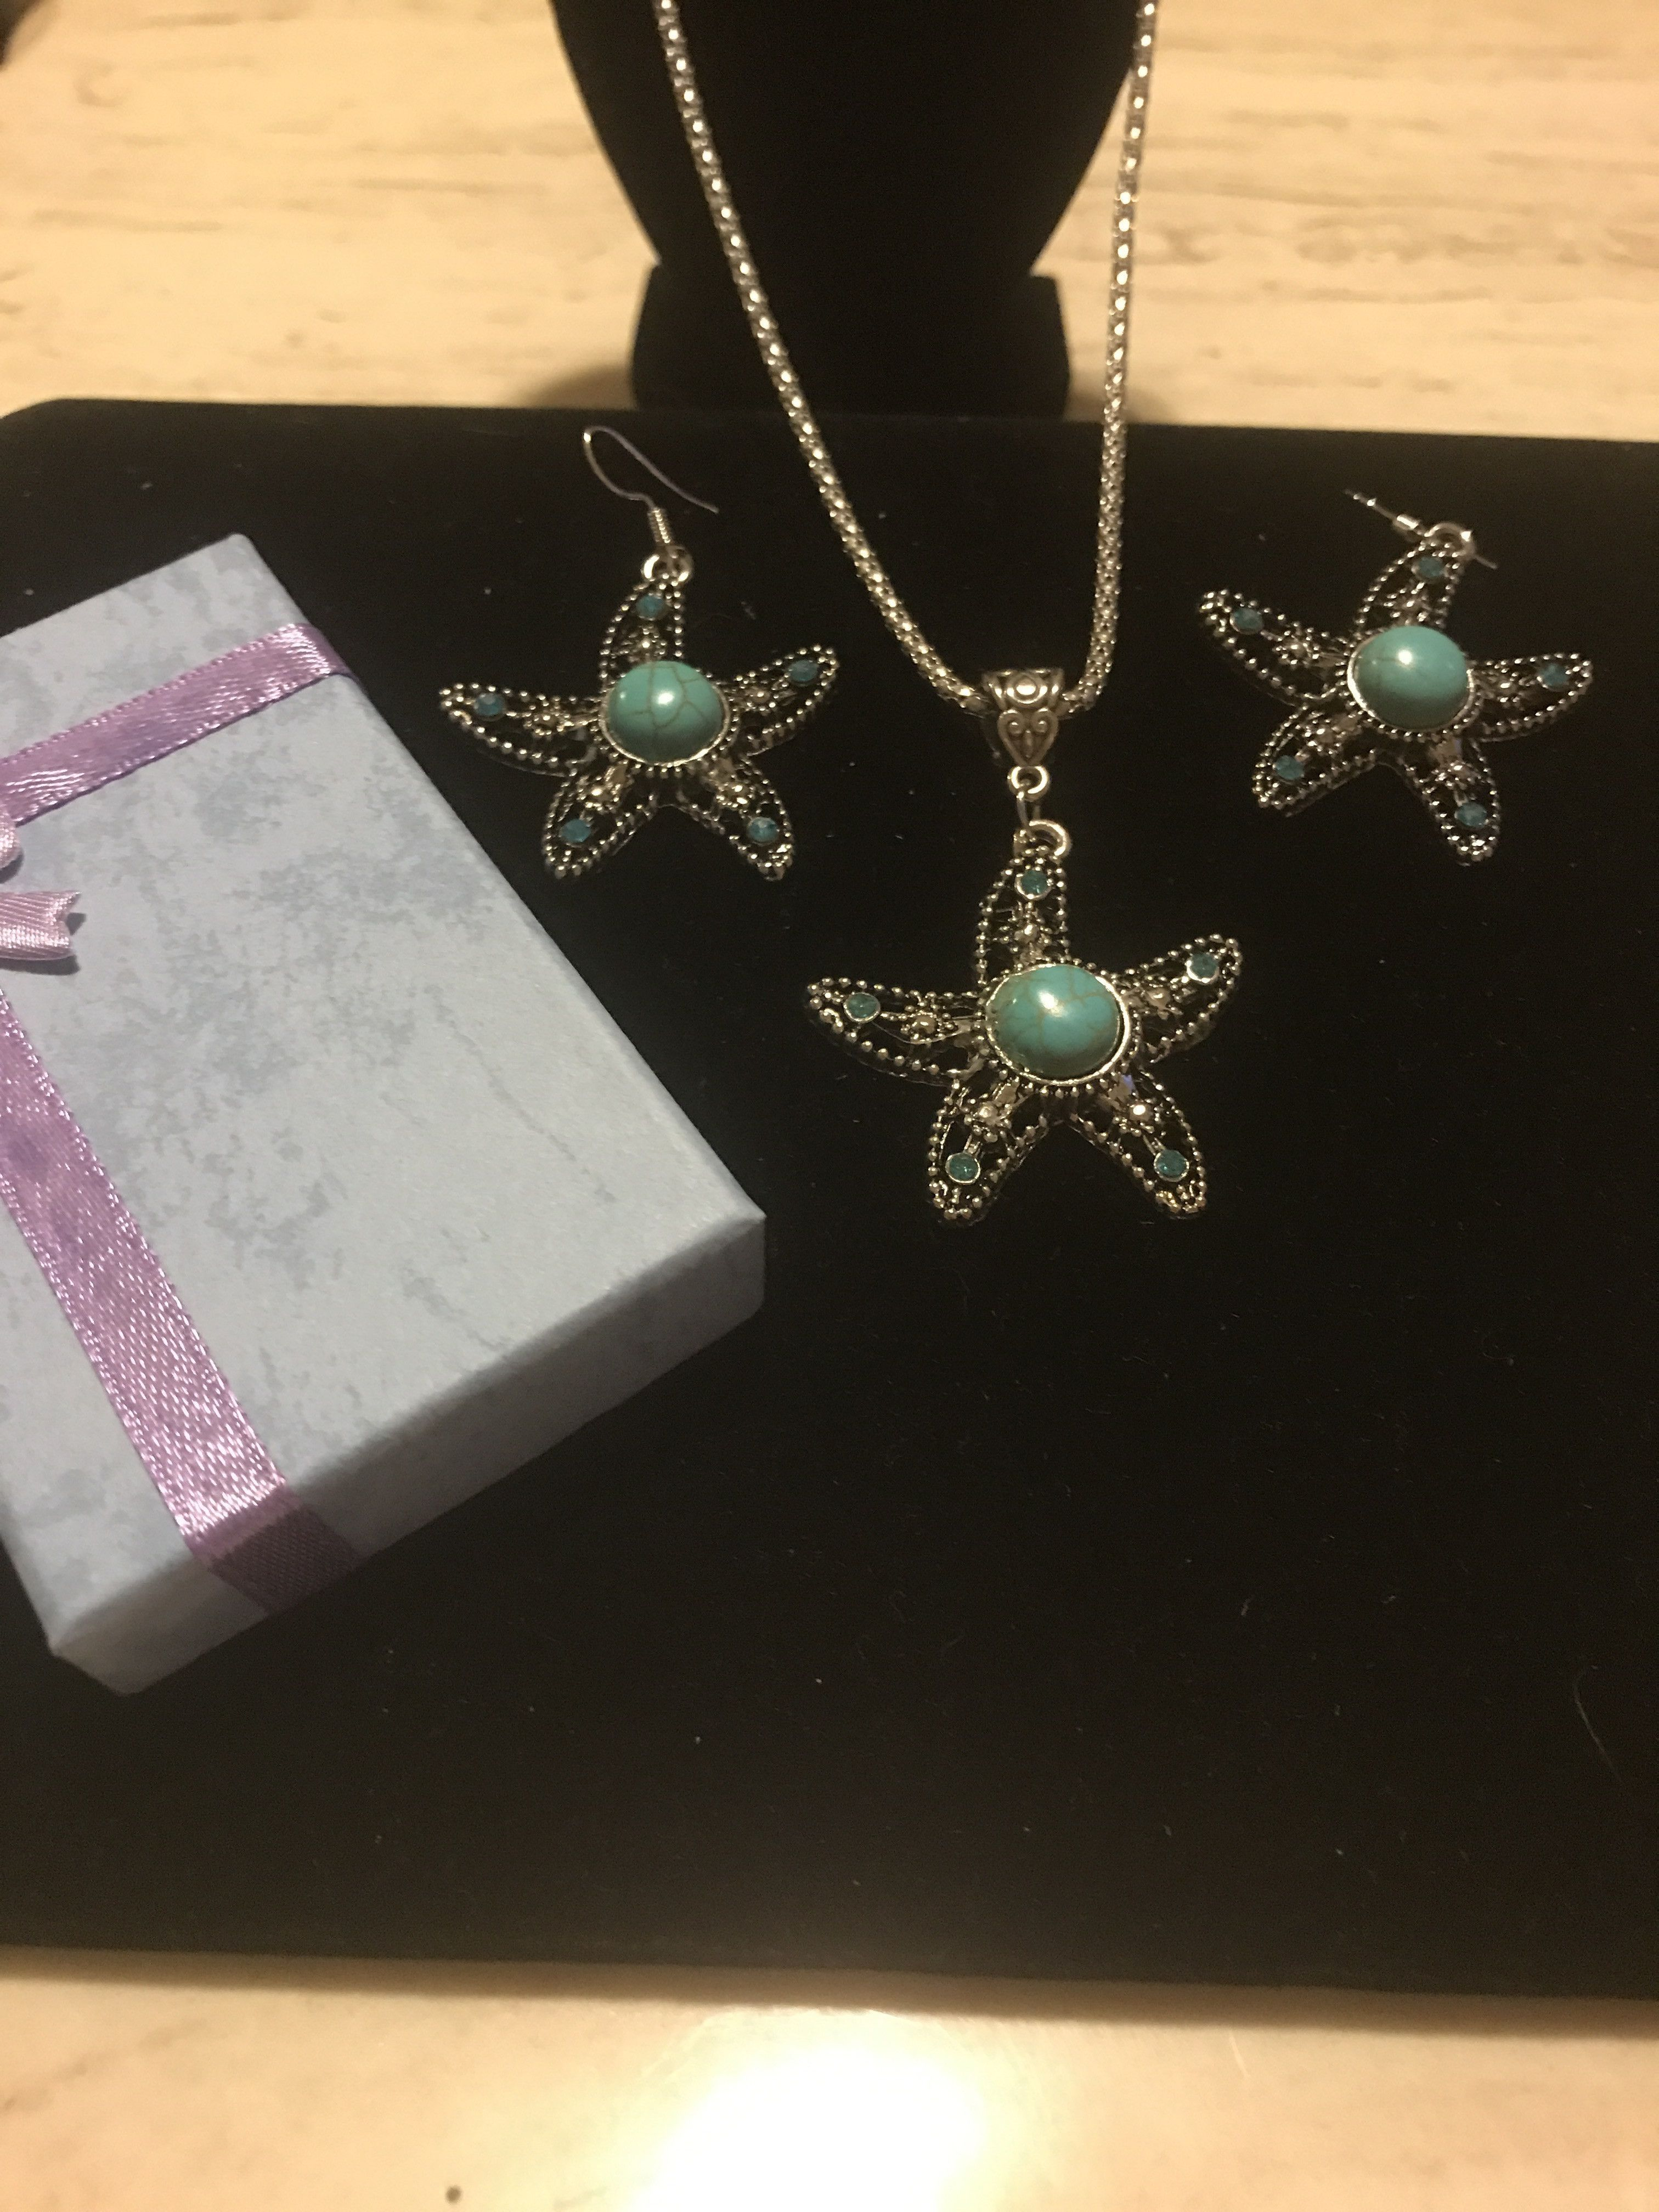 Vintage Tibetan Silver And Turquoise Jewelry Set